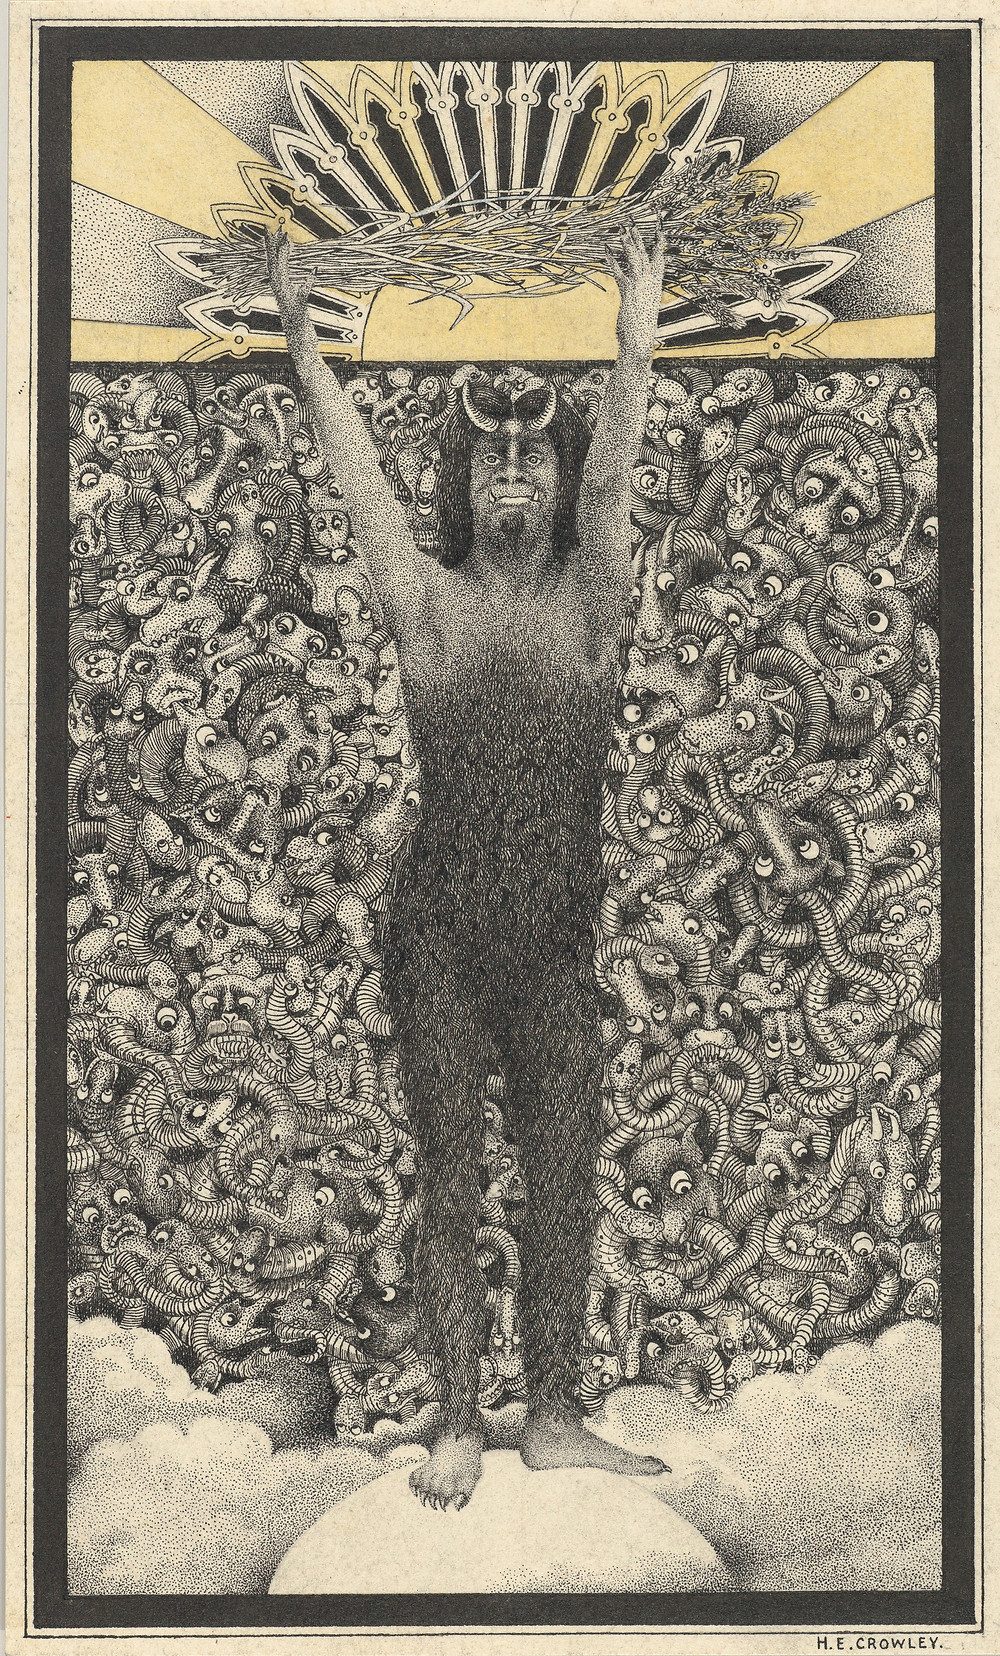 Herbert E. Crowley (British, London 1873–1939 Zurich) Rye, ca. 1911 American, British, Pen and ink; Sheet: 7 15/16 × 4 13/16 in. (20.2 × 12.2 cm) The Metropolitan Museum of Art, New York, Gift of Mrs. Alice Lewisohn Crowley, 1946 (46.128.170) http://www.metmuseum.org/Collections/search-the-collections/700272